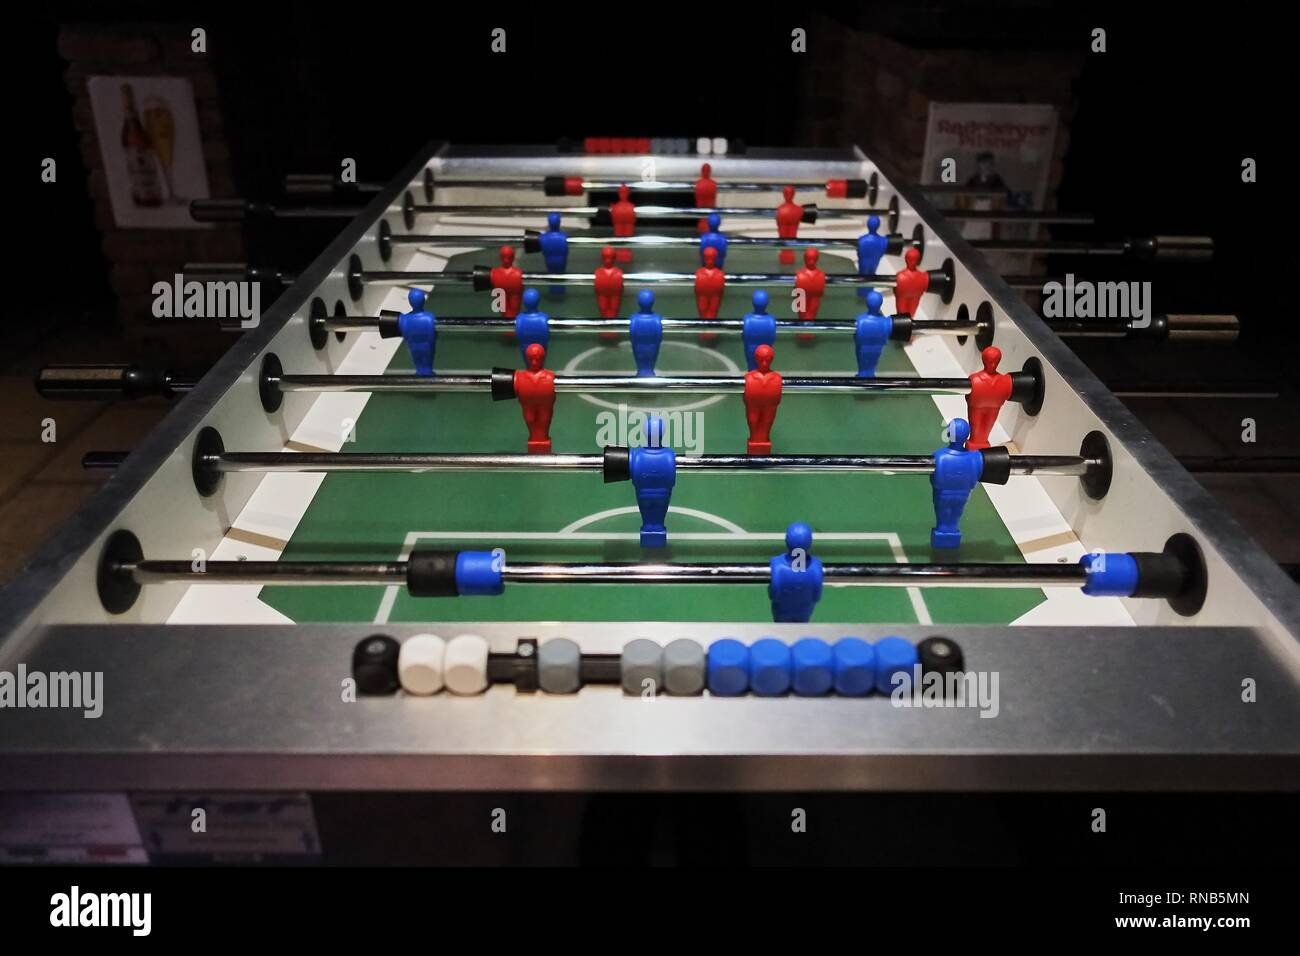 Table soccer in bar without people dark area - Stock Image